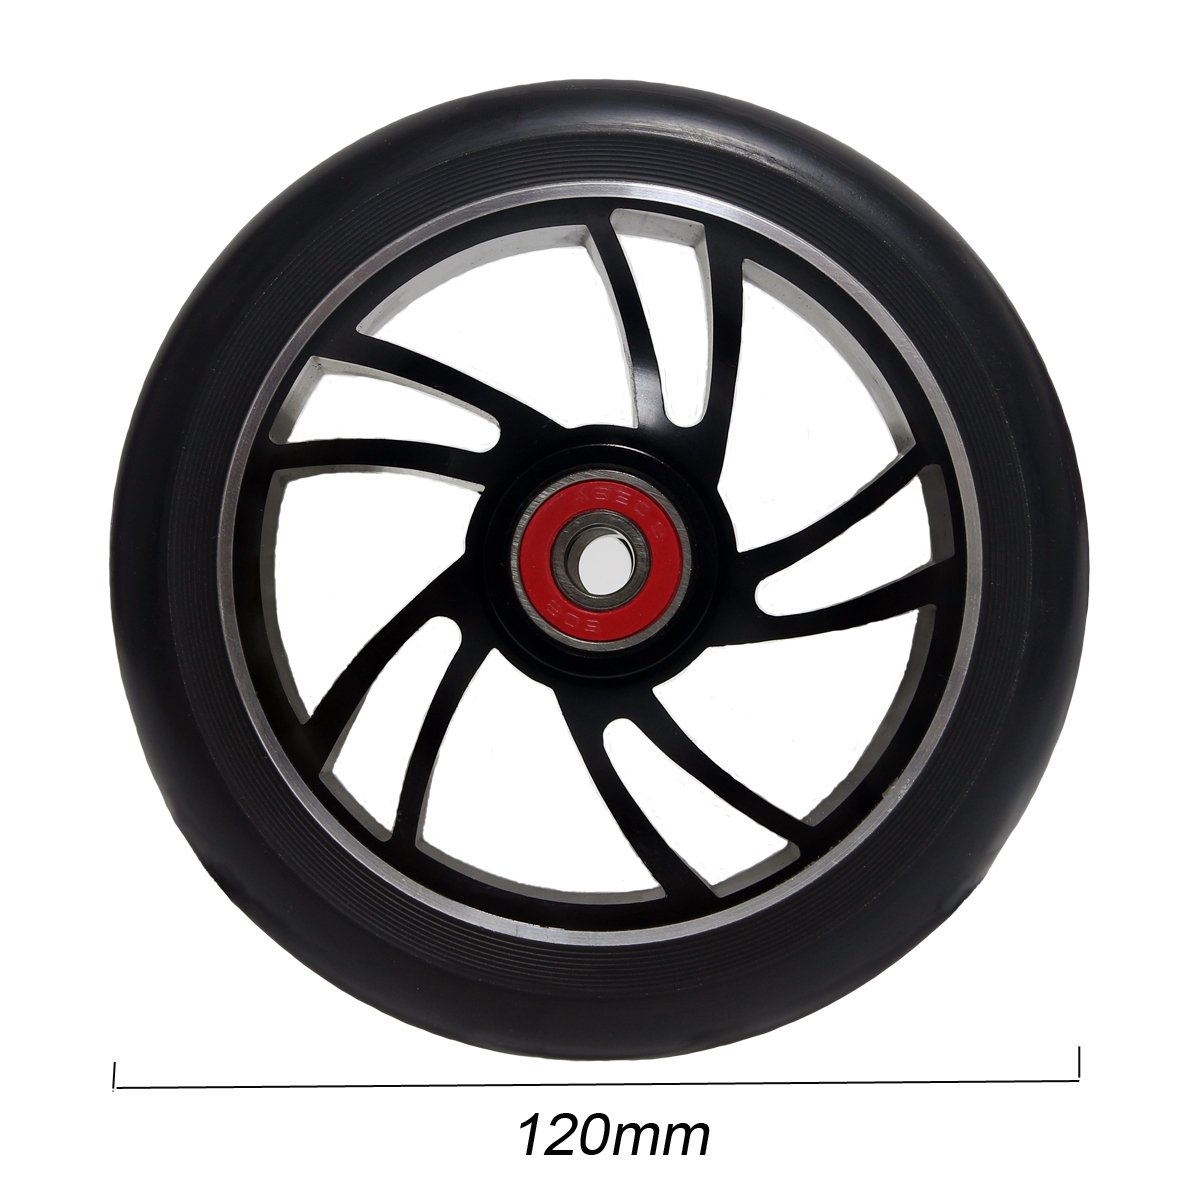 Amazon.com: 2pcs rueda de 120 mm PRO – Patinete Scooter de ...